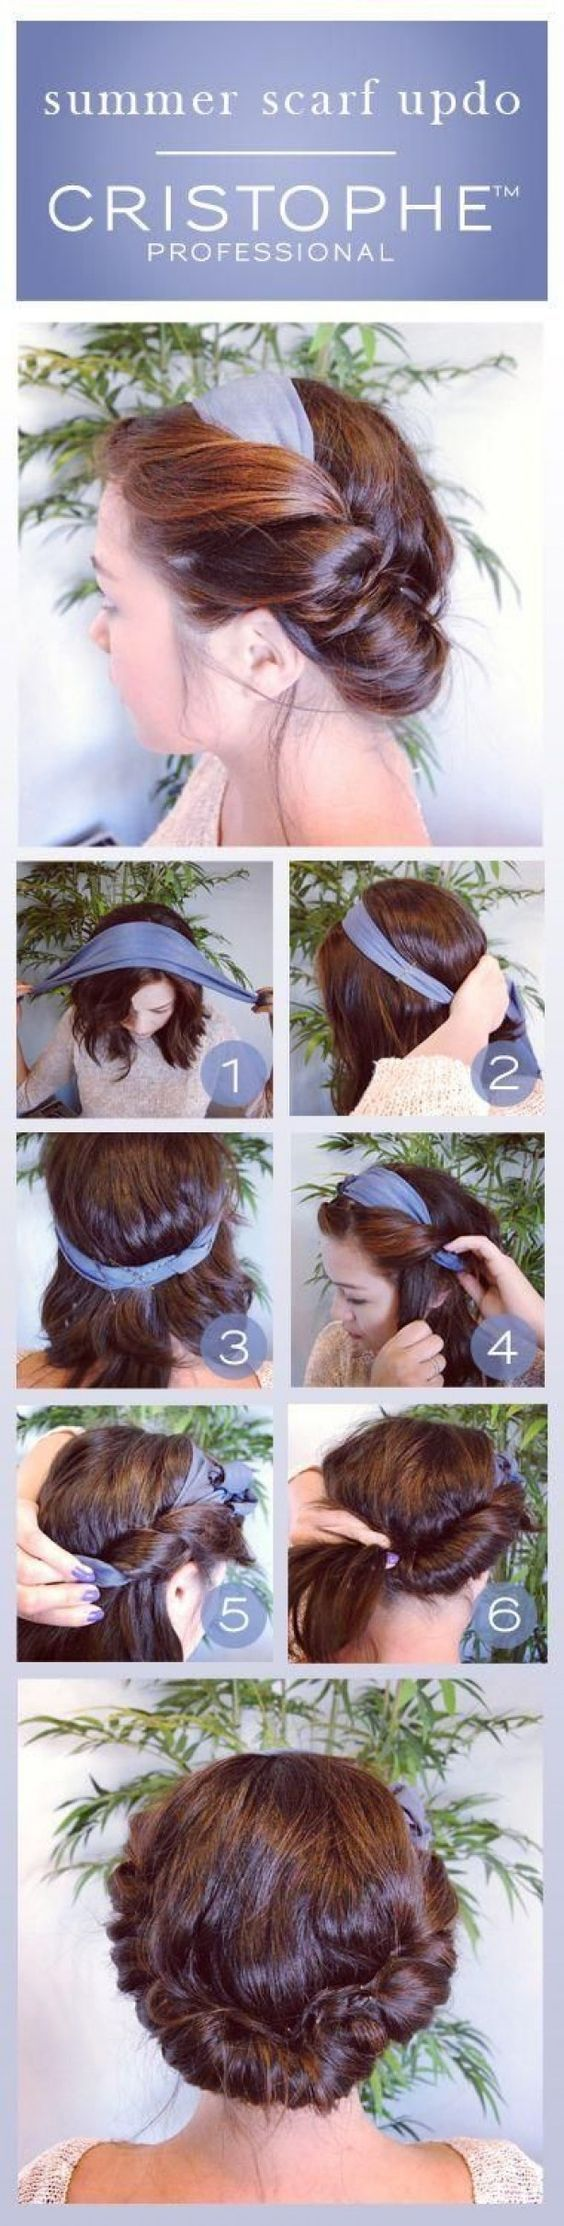 Need to try this! Seems simple, but looks amazing...: